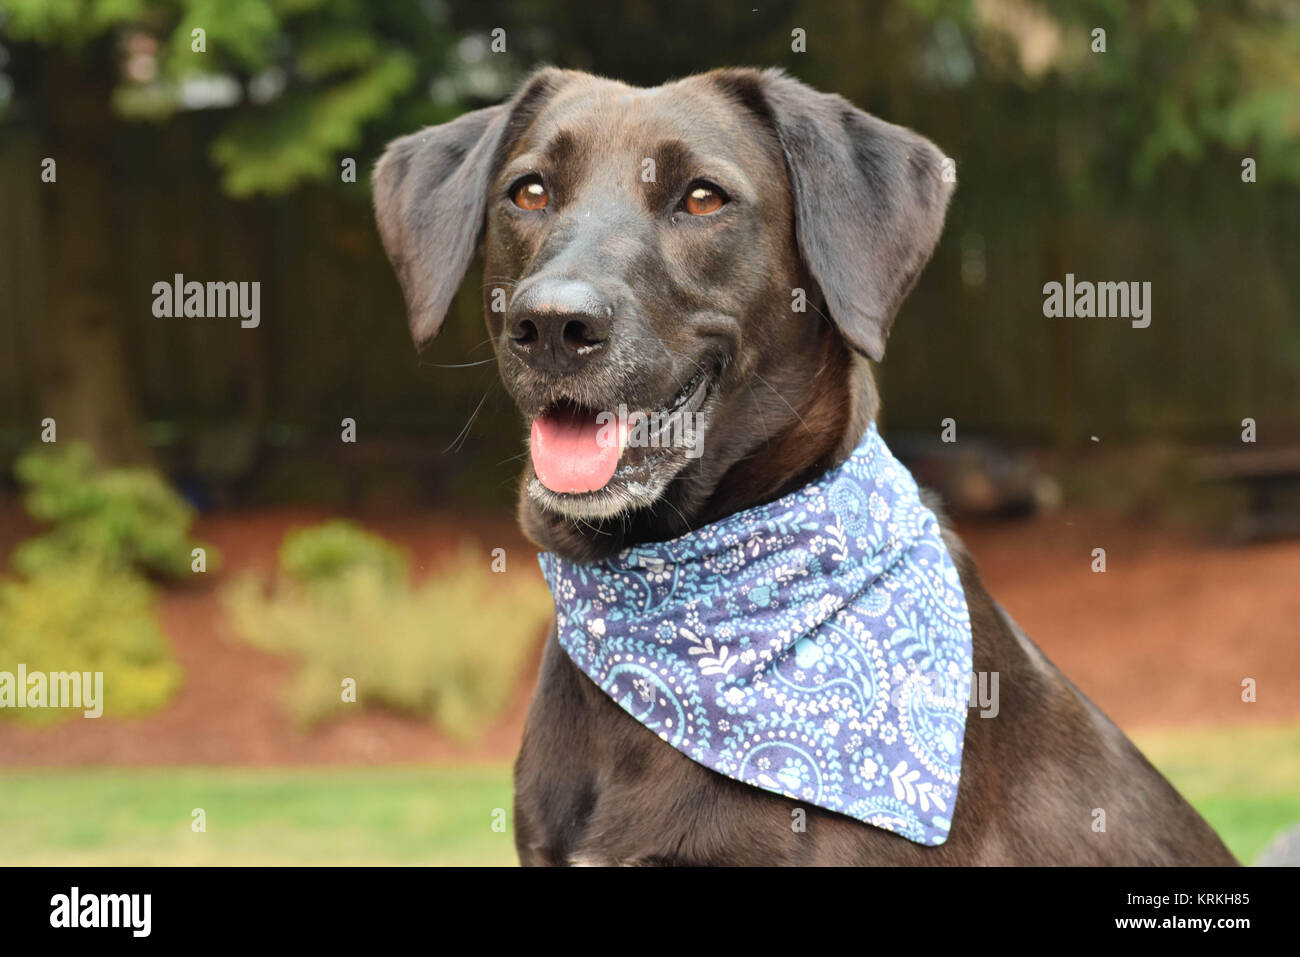 Black smiling dog in a blue bandana. - Stock Image